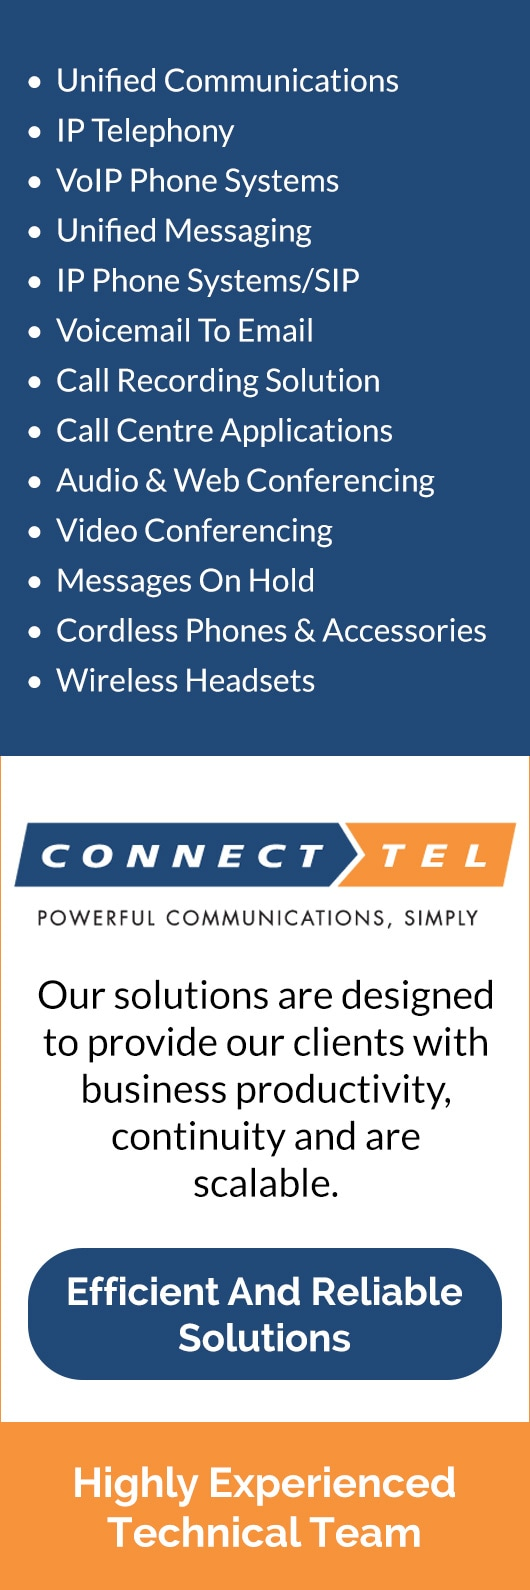 Connect Tel Business Communication Solutions - Telephone